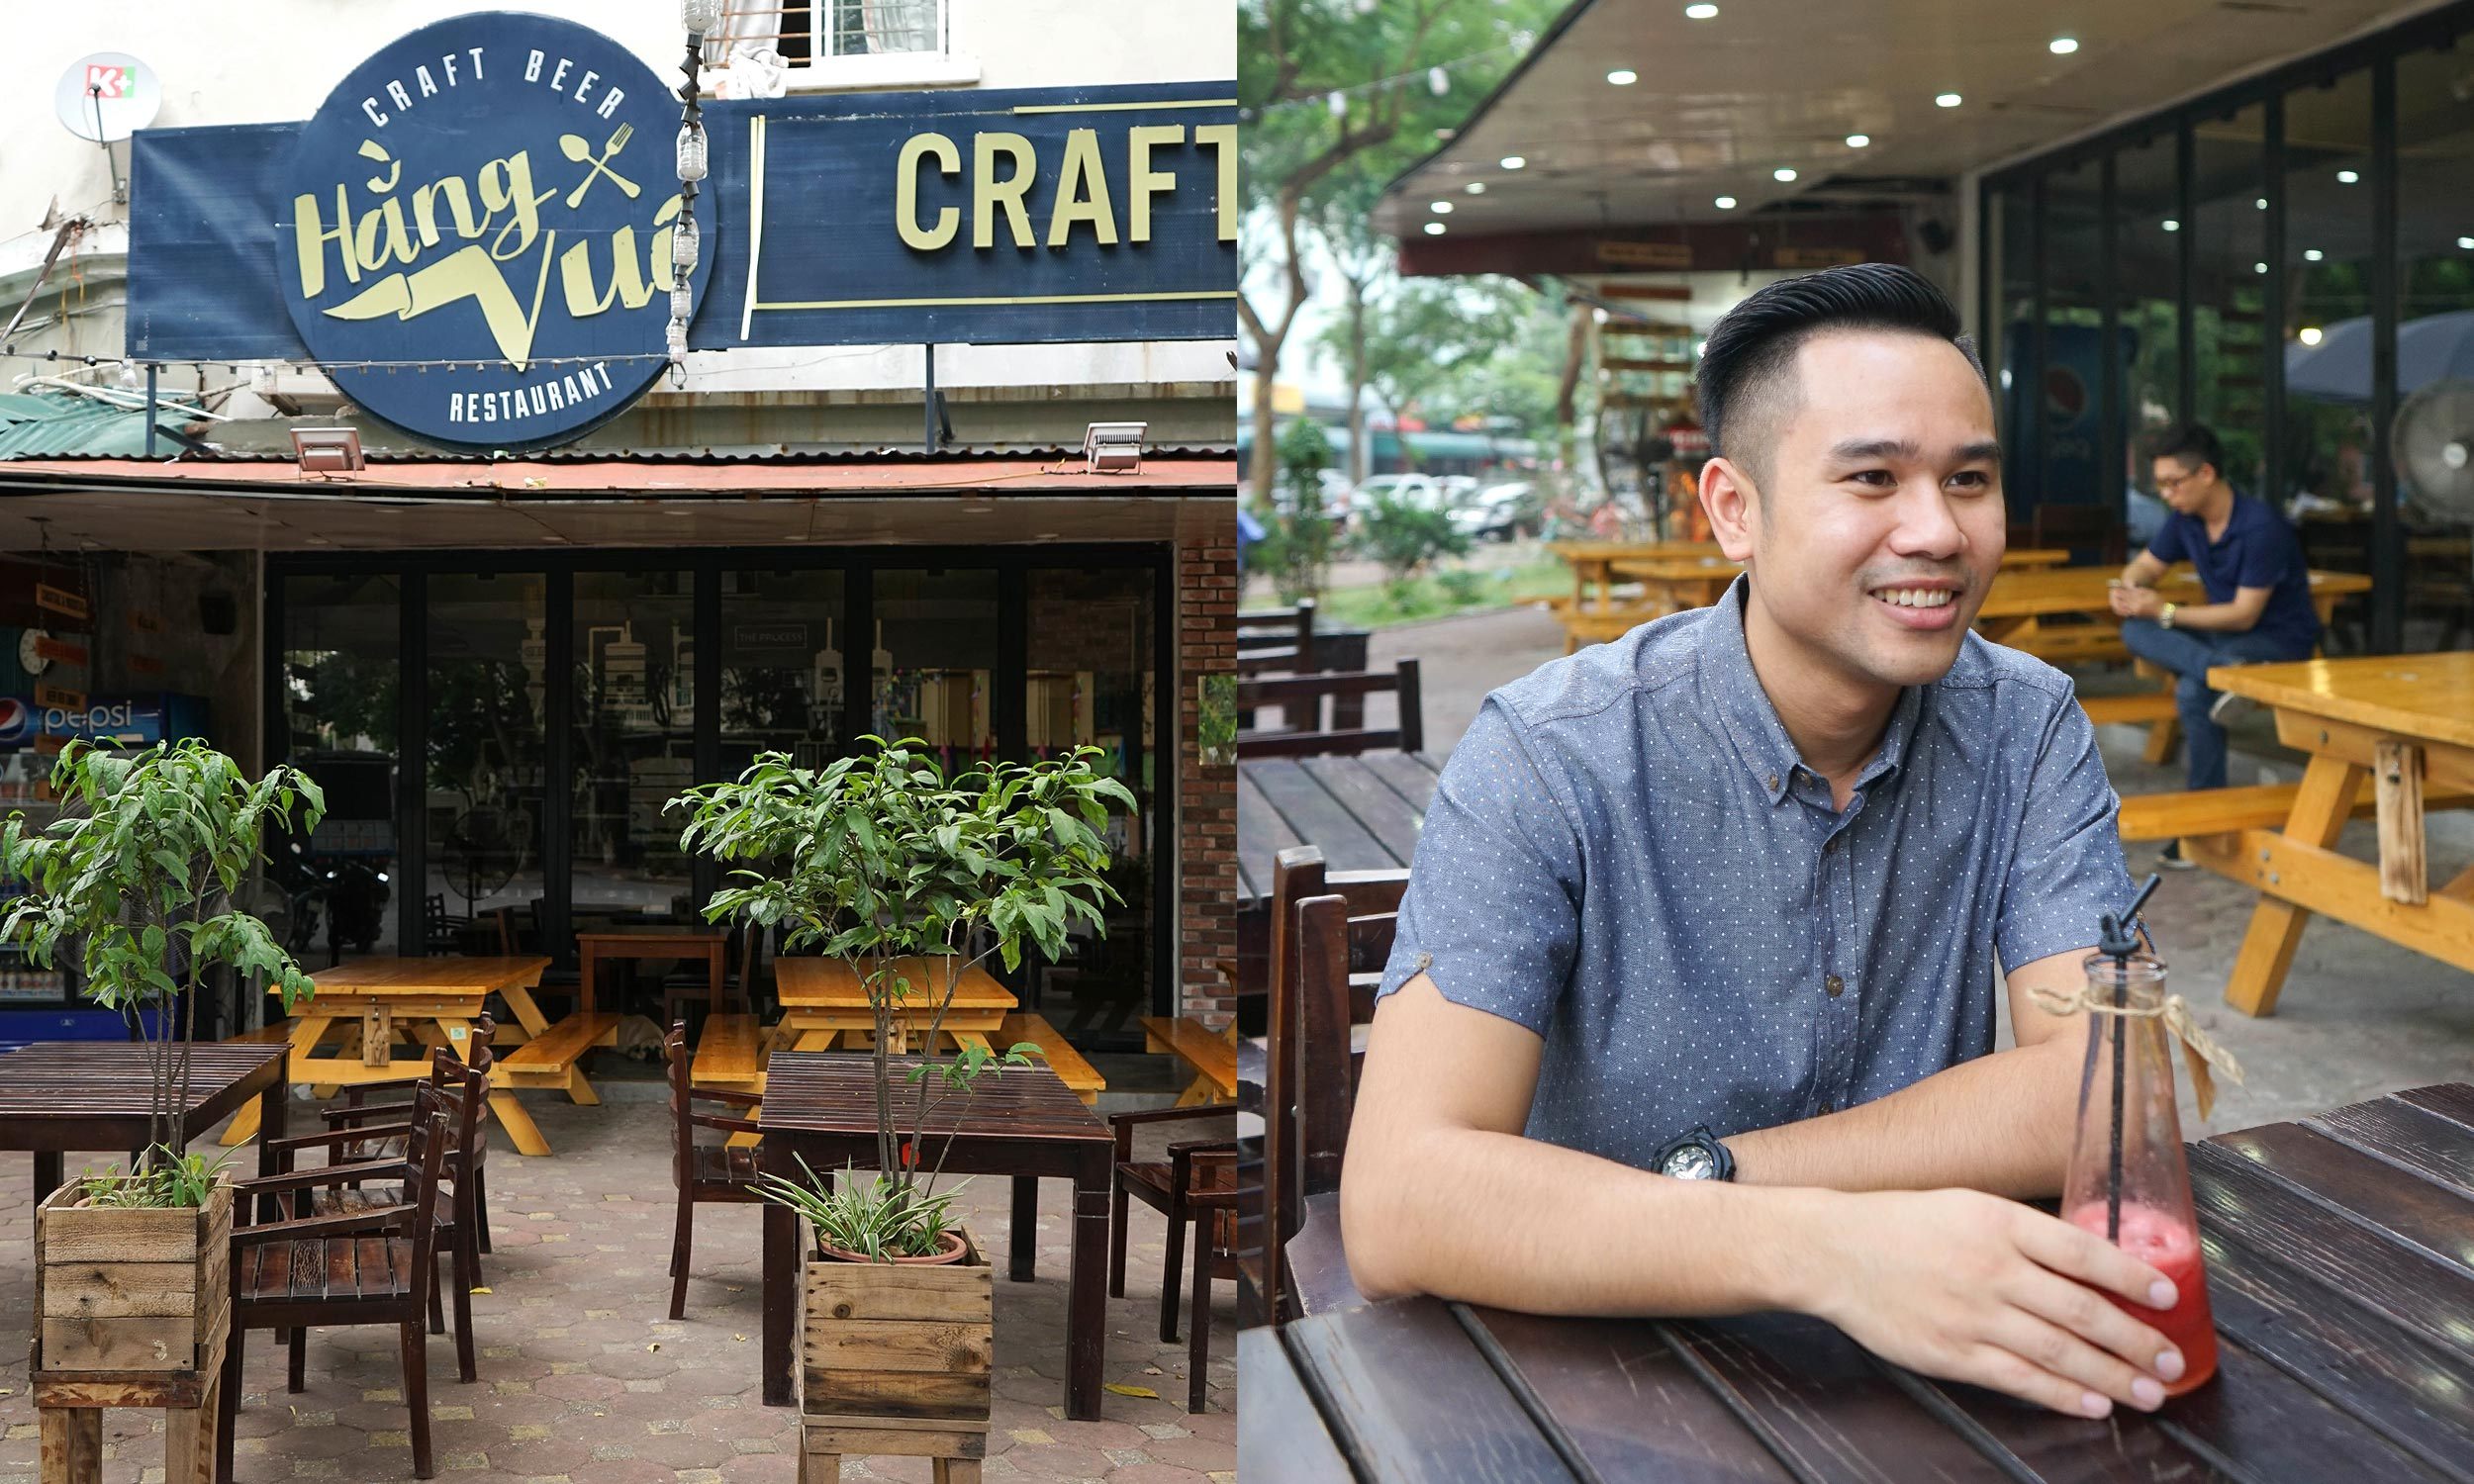 Founder, Quang Van sits down with The Hop Review to discuss the introduction of craft beer to Hanoi